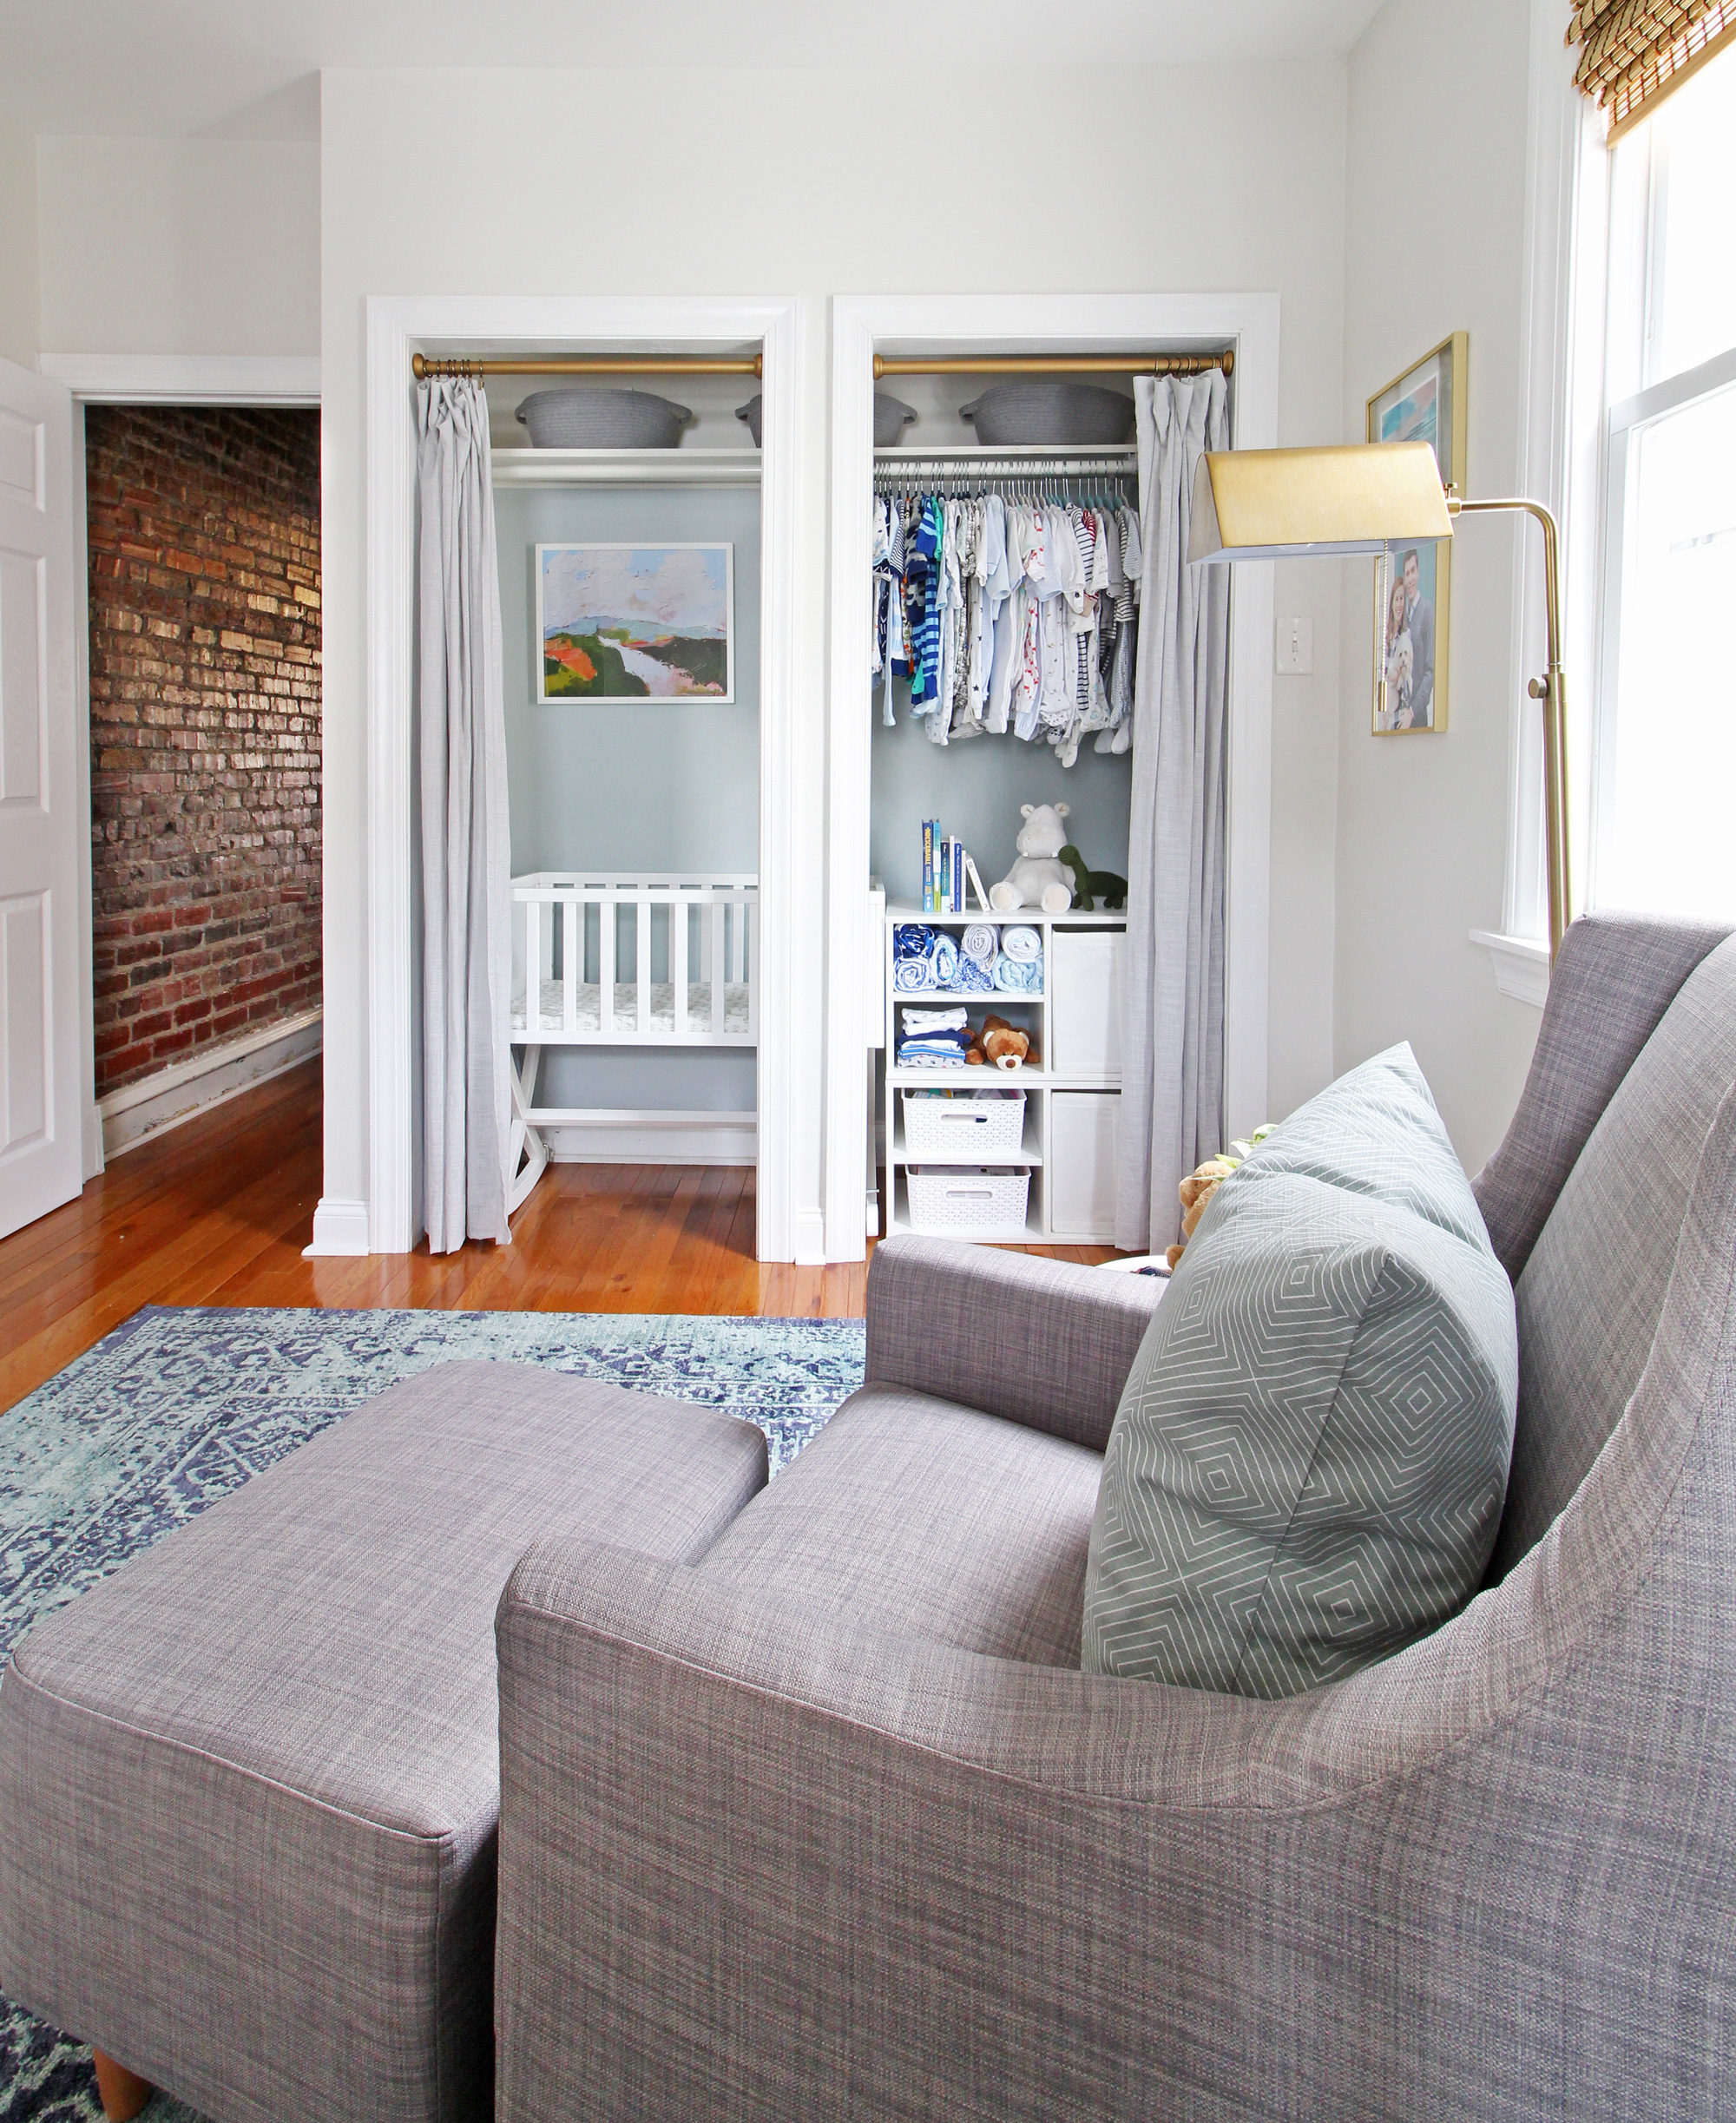 "Come on over to the Mix & Match Design Company blog for this cozy modern nursery nook reveal! This space is shared with a home office and is full of great ideas on how to squeeze in a small nursery into a closet. The ""nursery nook"" concept is perfect if you live in a smaller home."